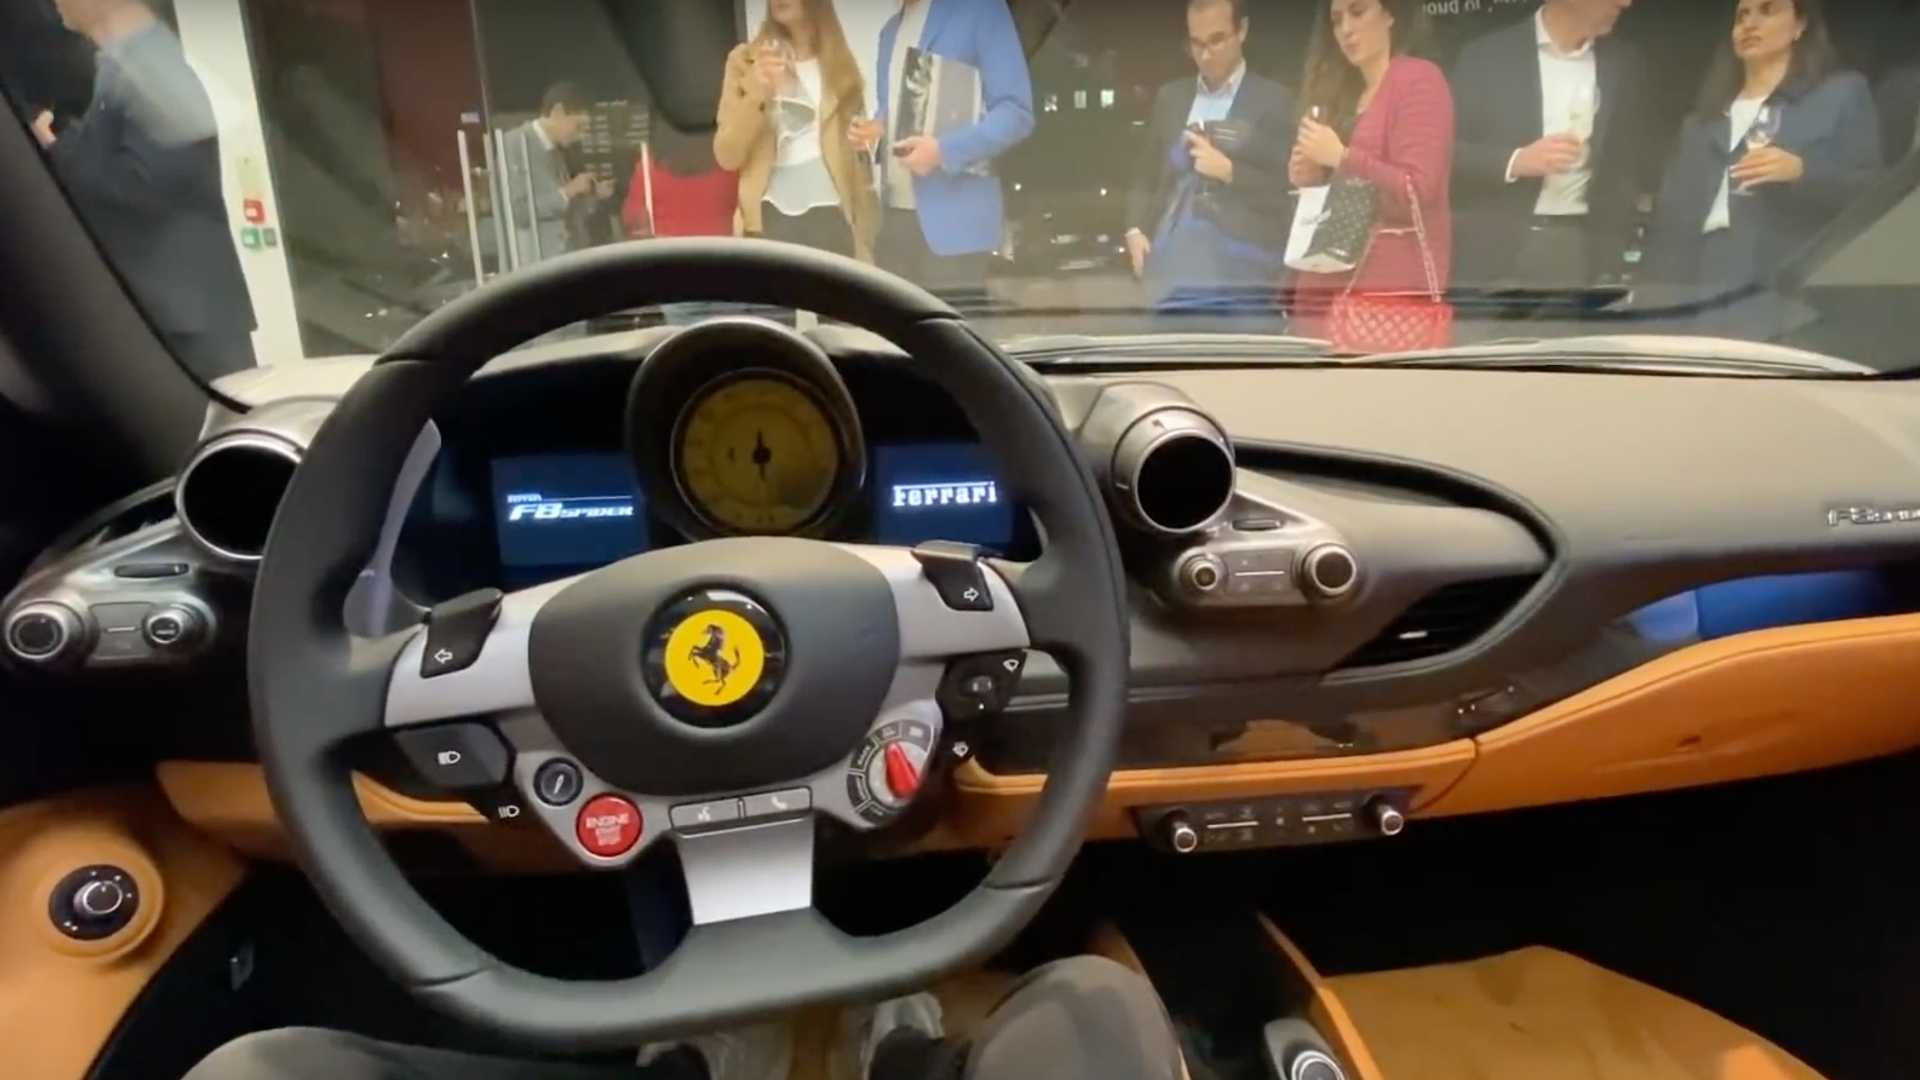 Ferrari F8 Spider Looks Right At Home At High End London Dealer